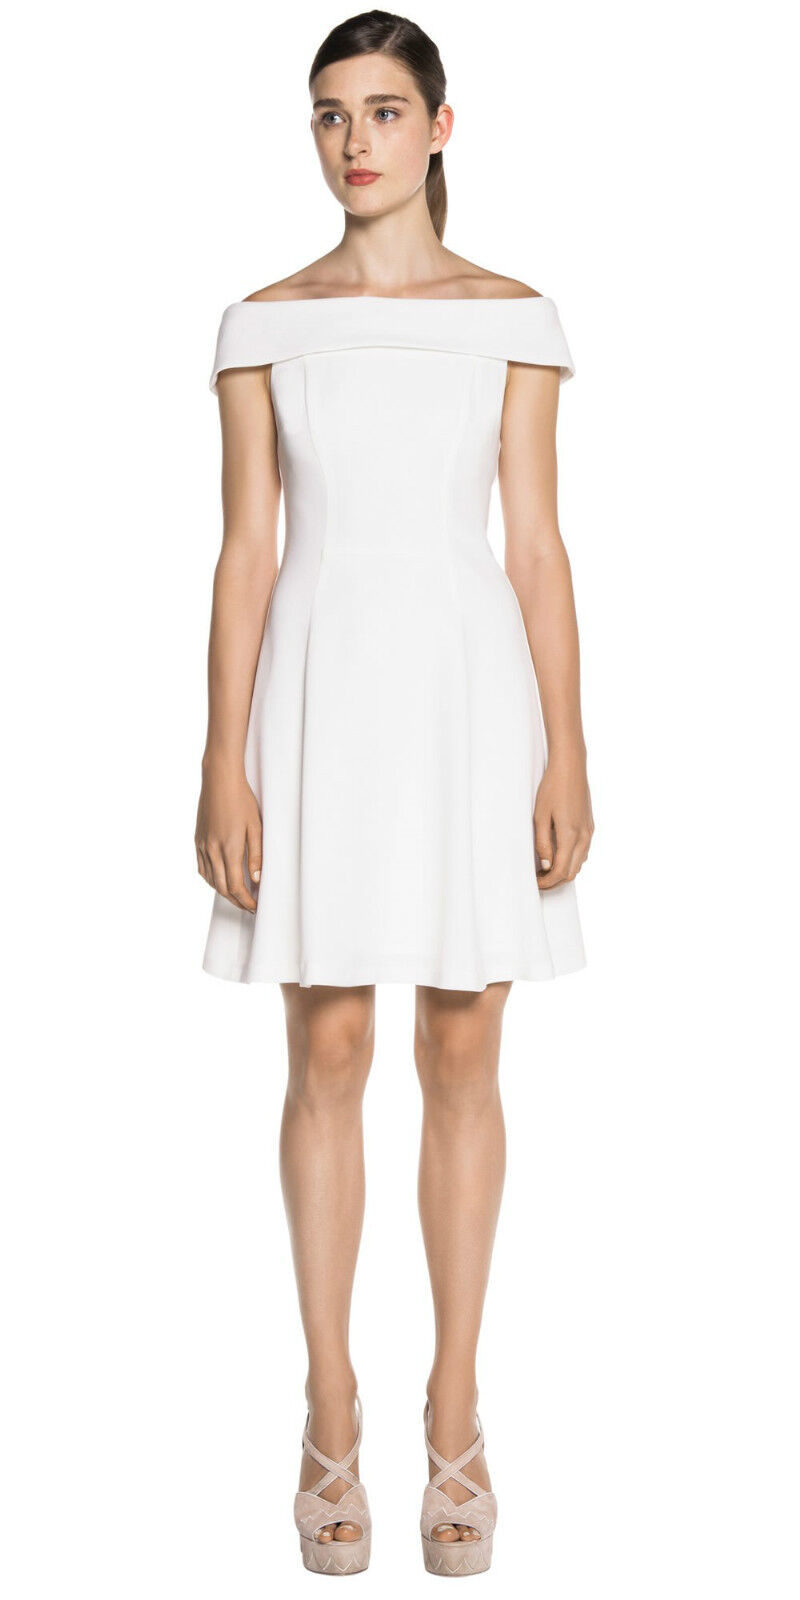 BNWT CUE Off the shoulder flare dress Sz 12 and 14 RRP 279